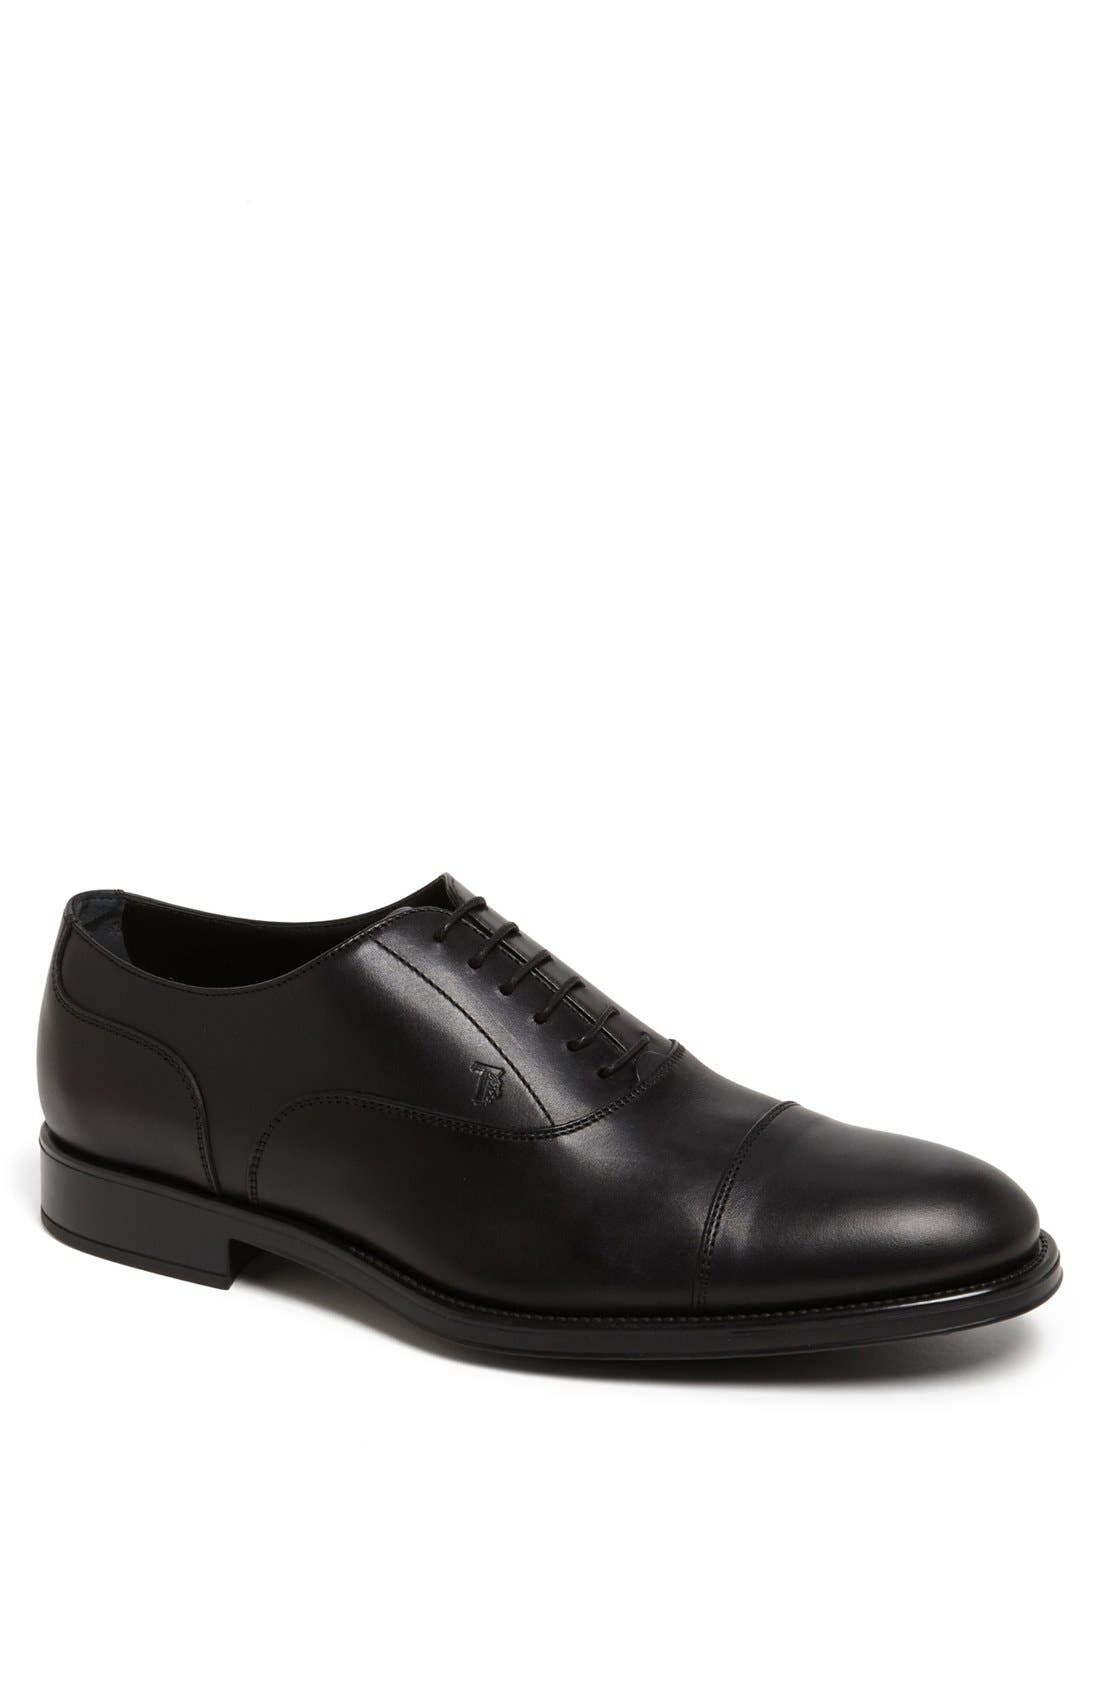 Tod's 'Francesina' Cap Toe Oxford